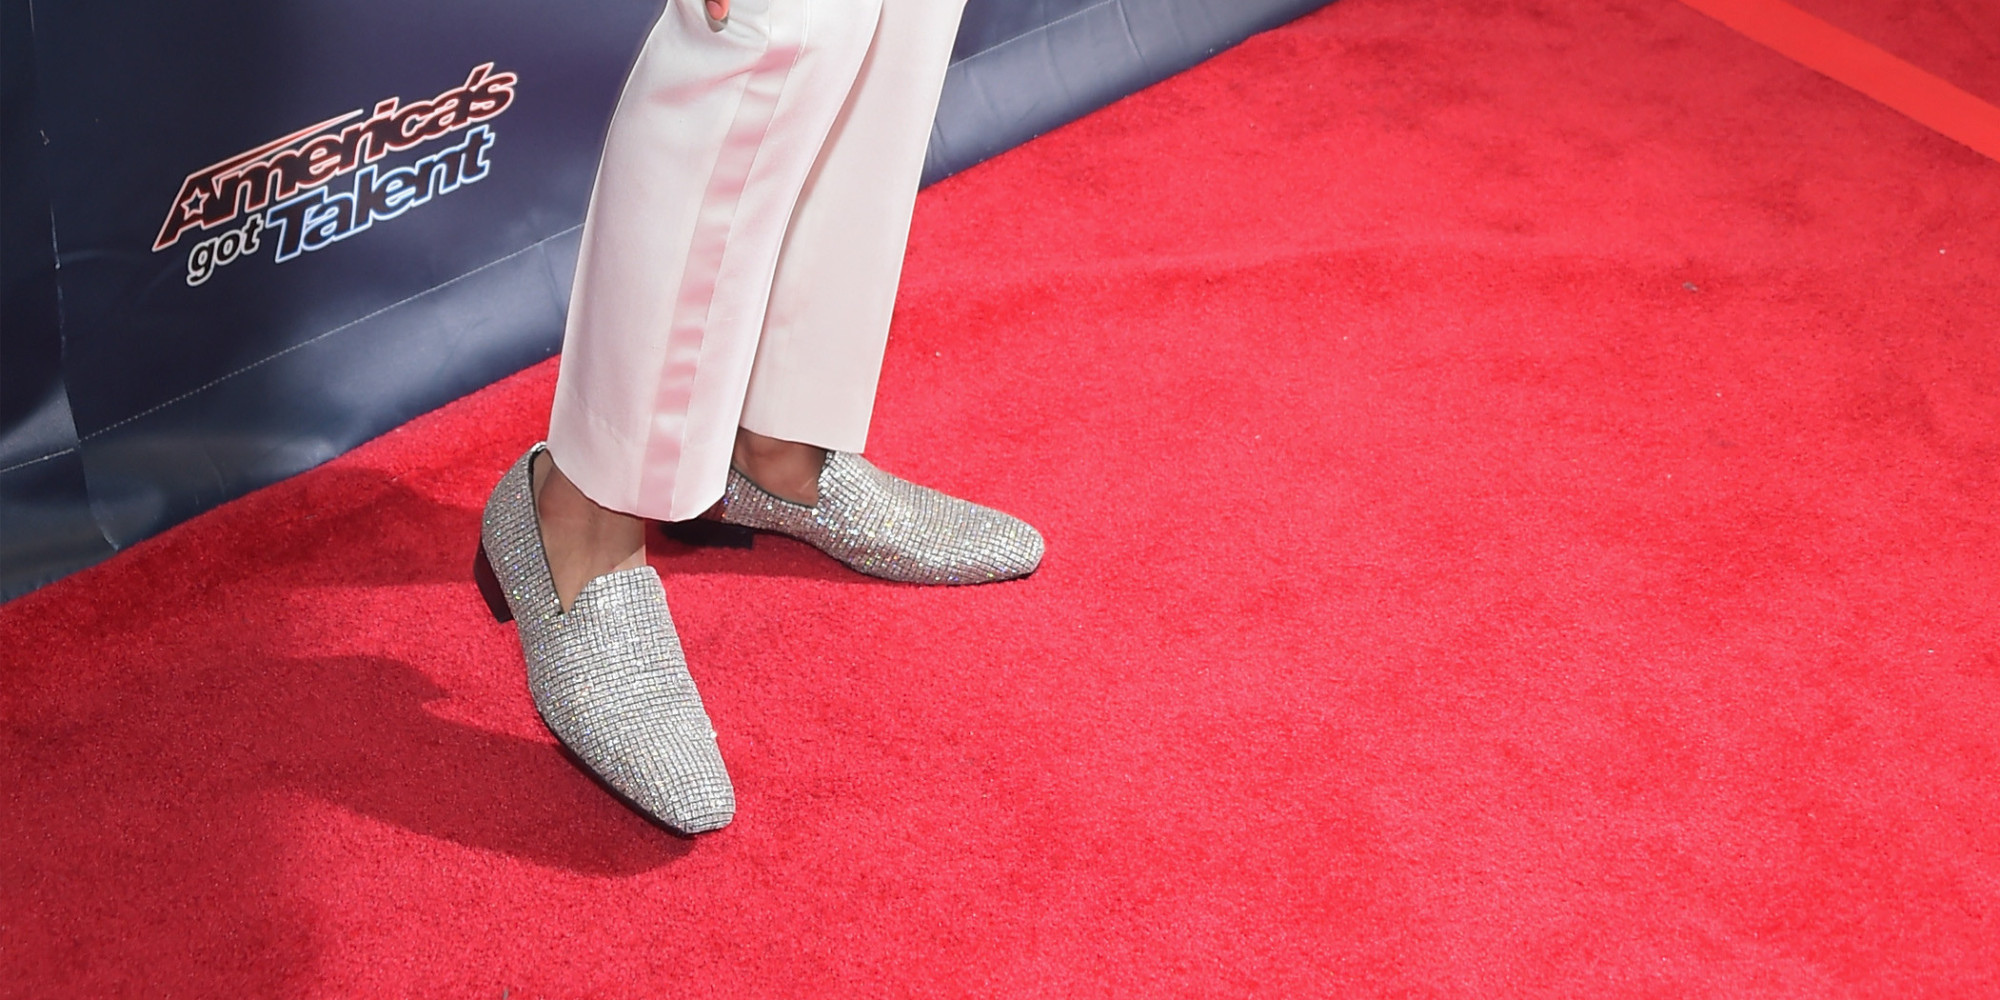 Diamond encrusted shoes nick cannon 2017